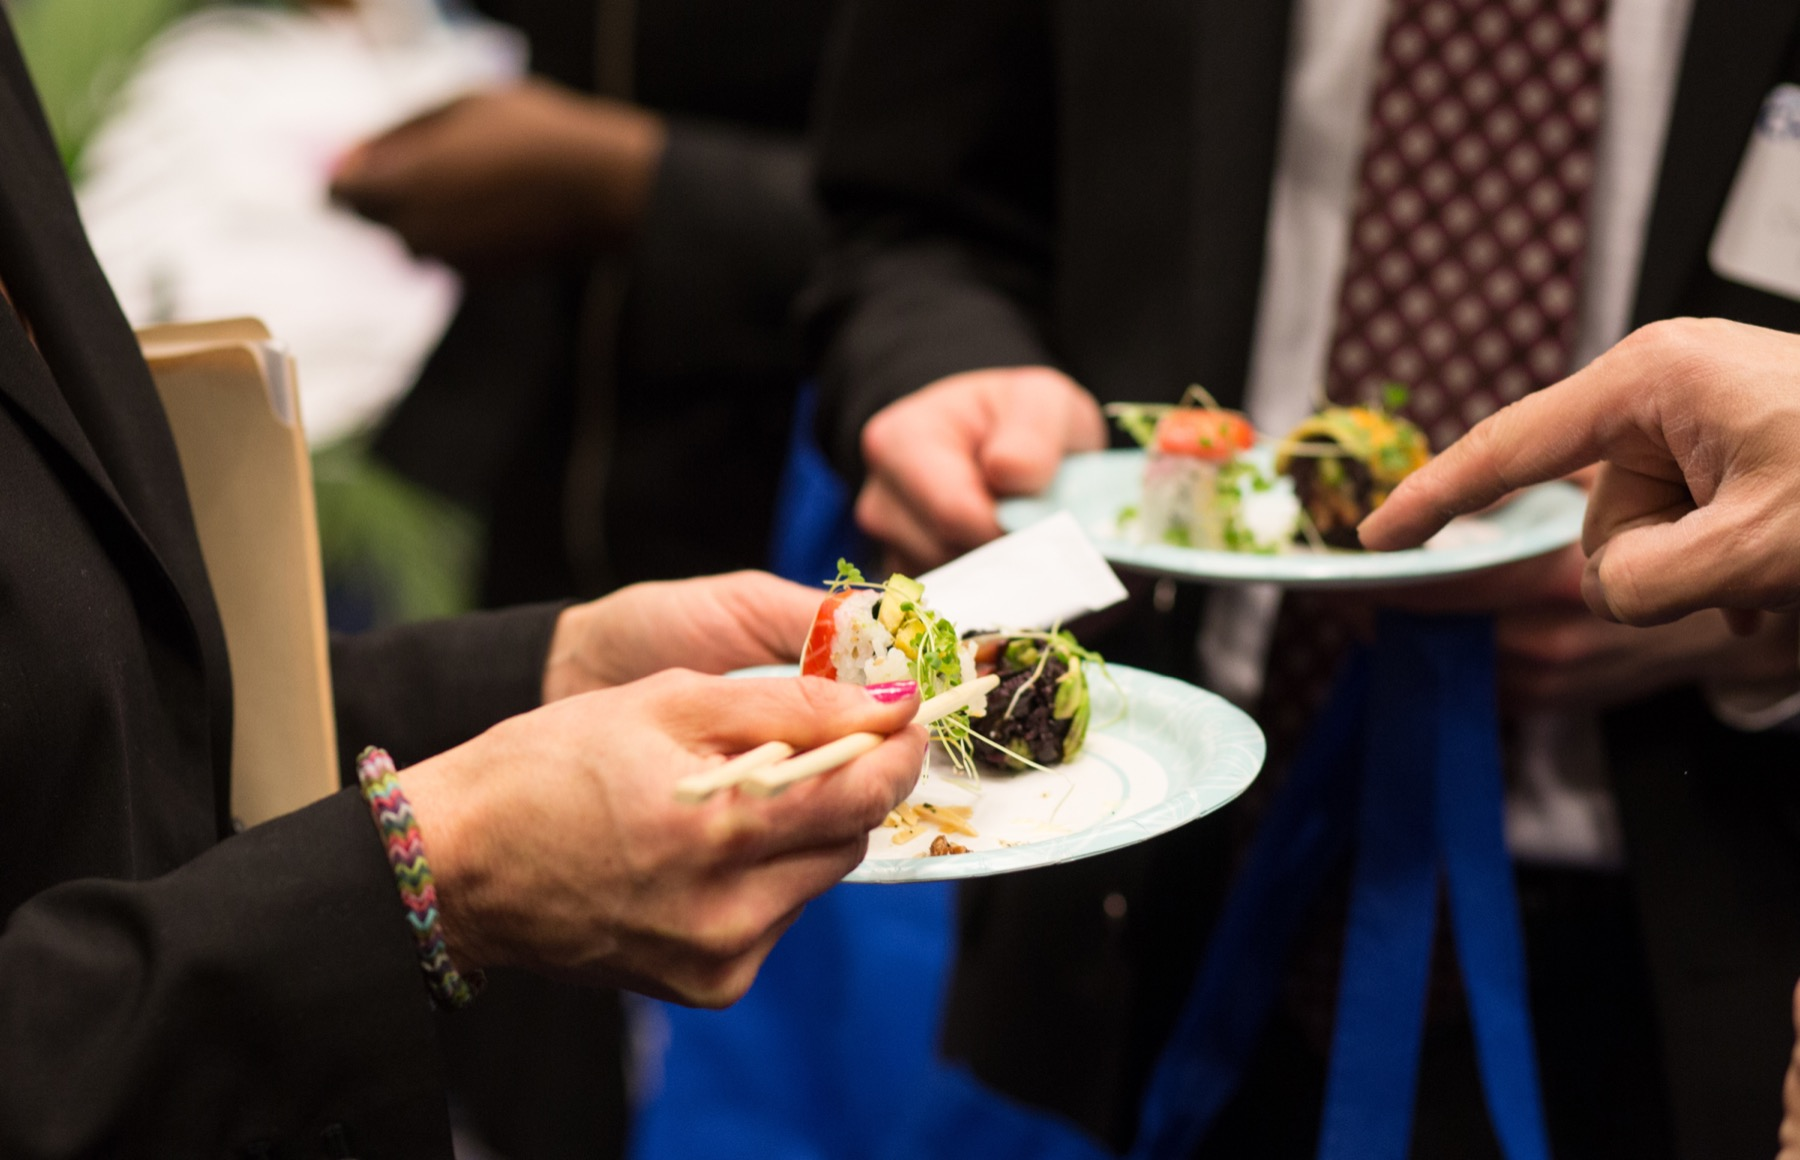 Hors d'oeuvres on a plate